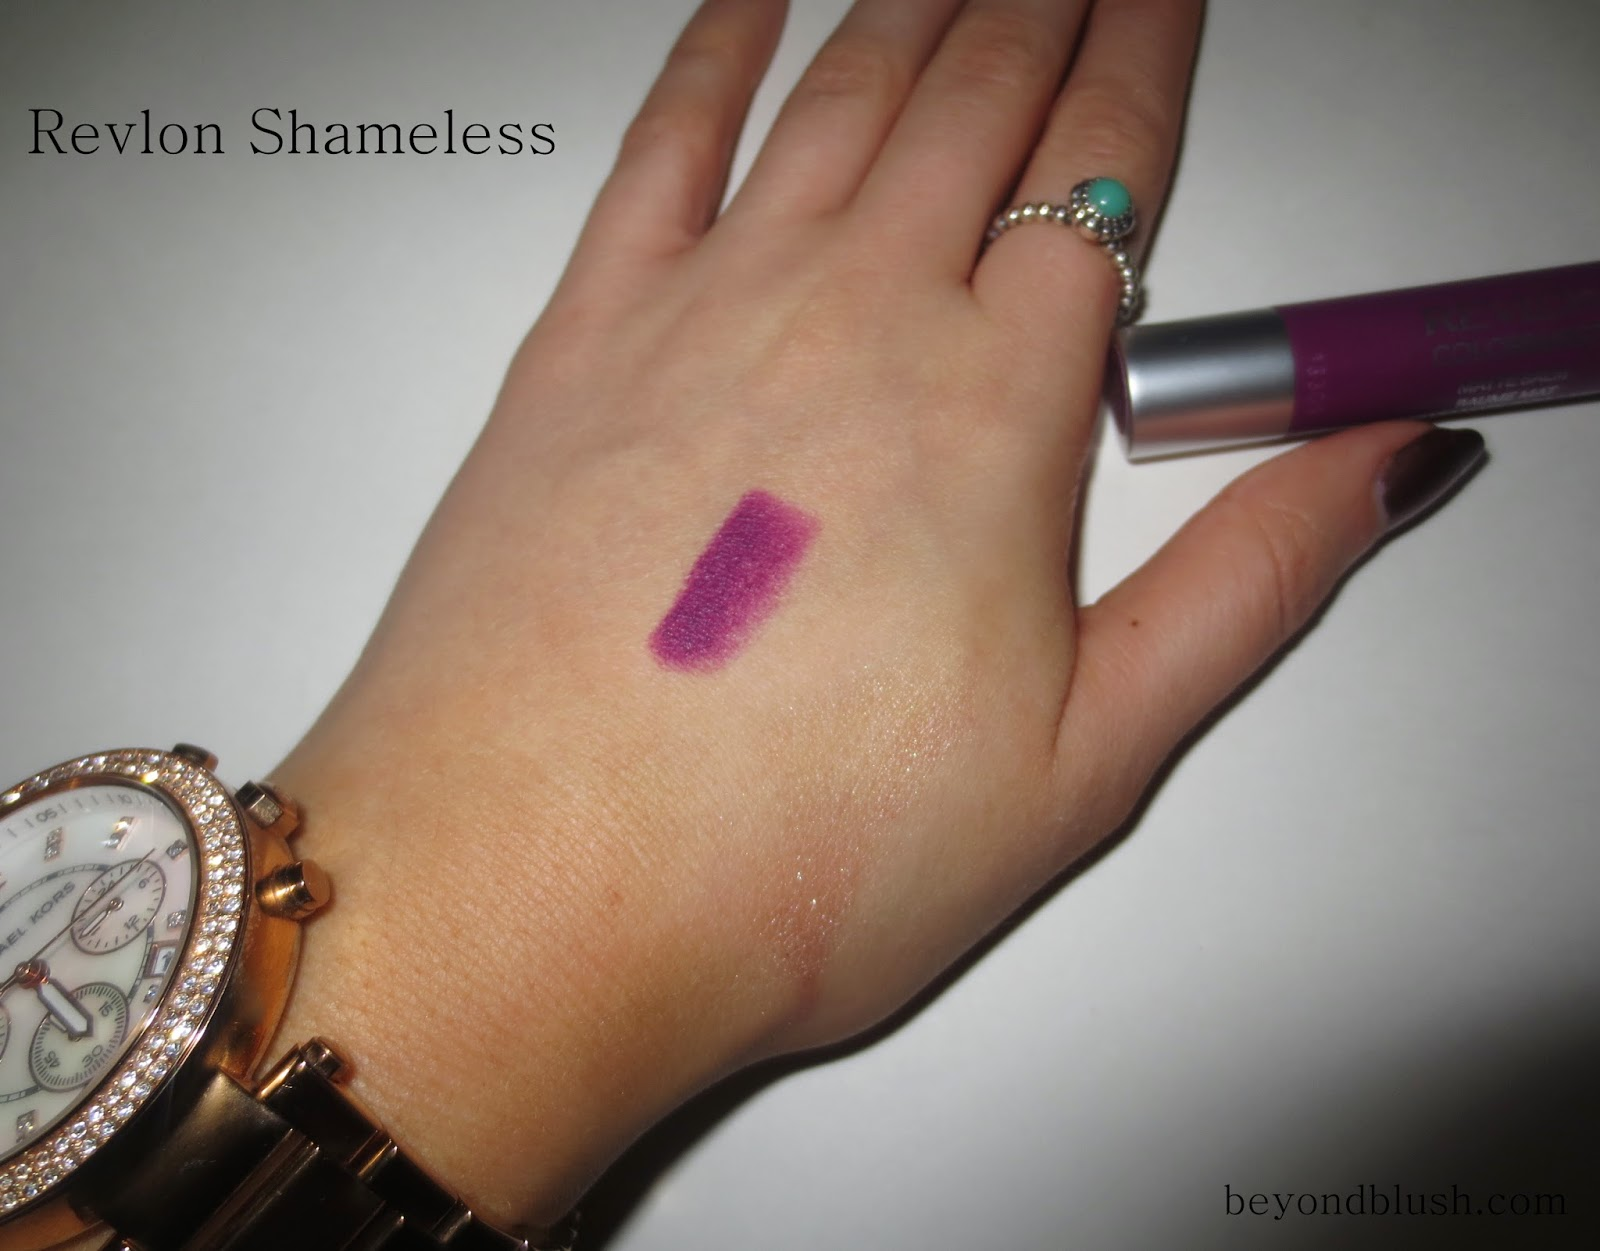 Revlon ColorBurst Matte Balm Shameless swatch on hand